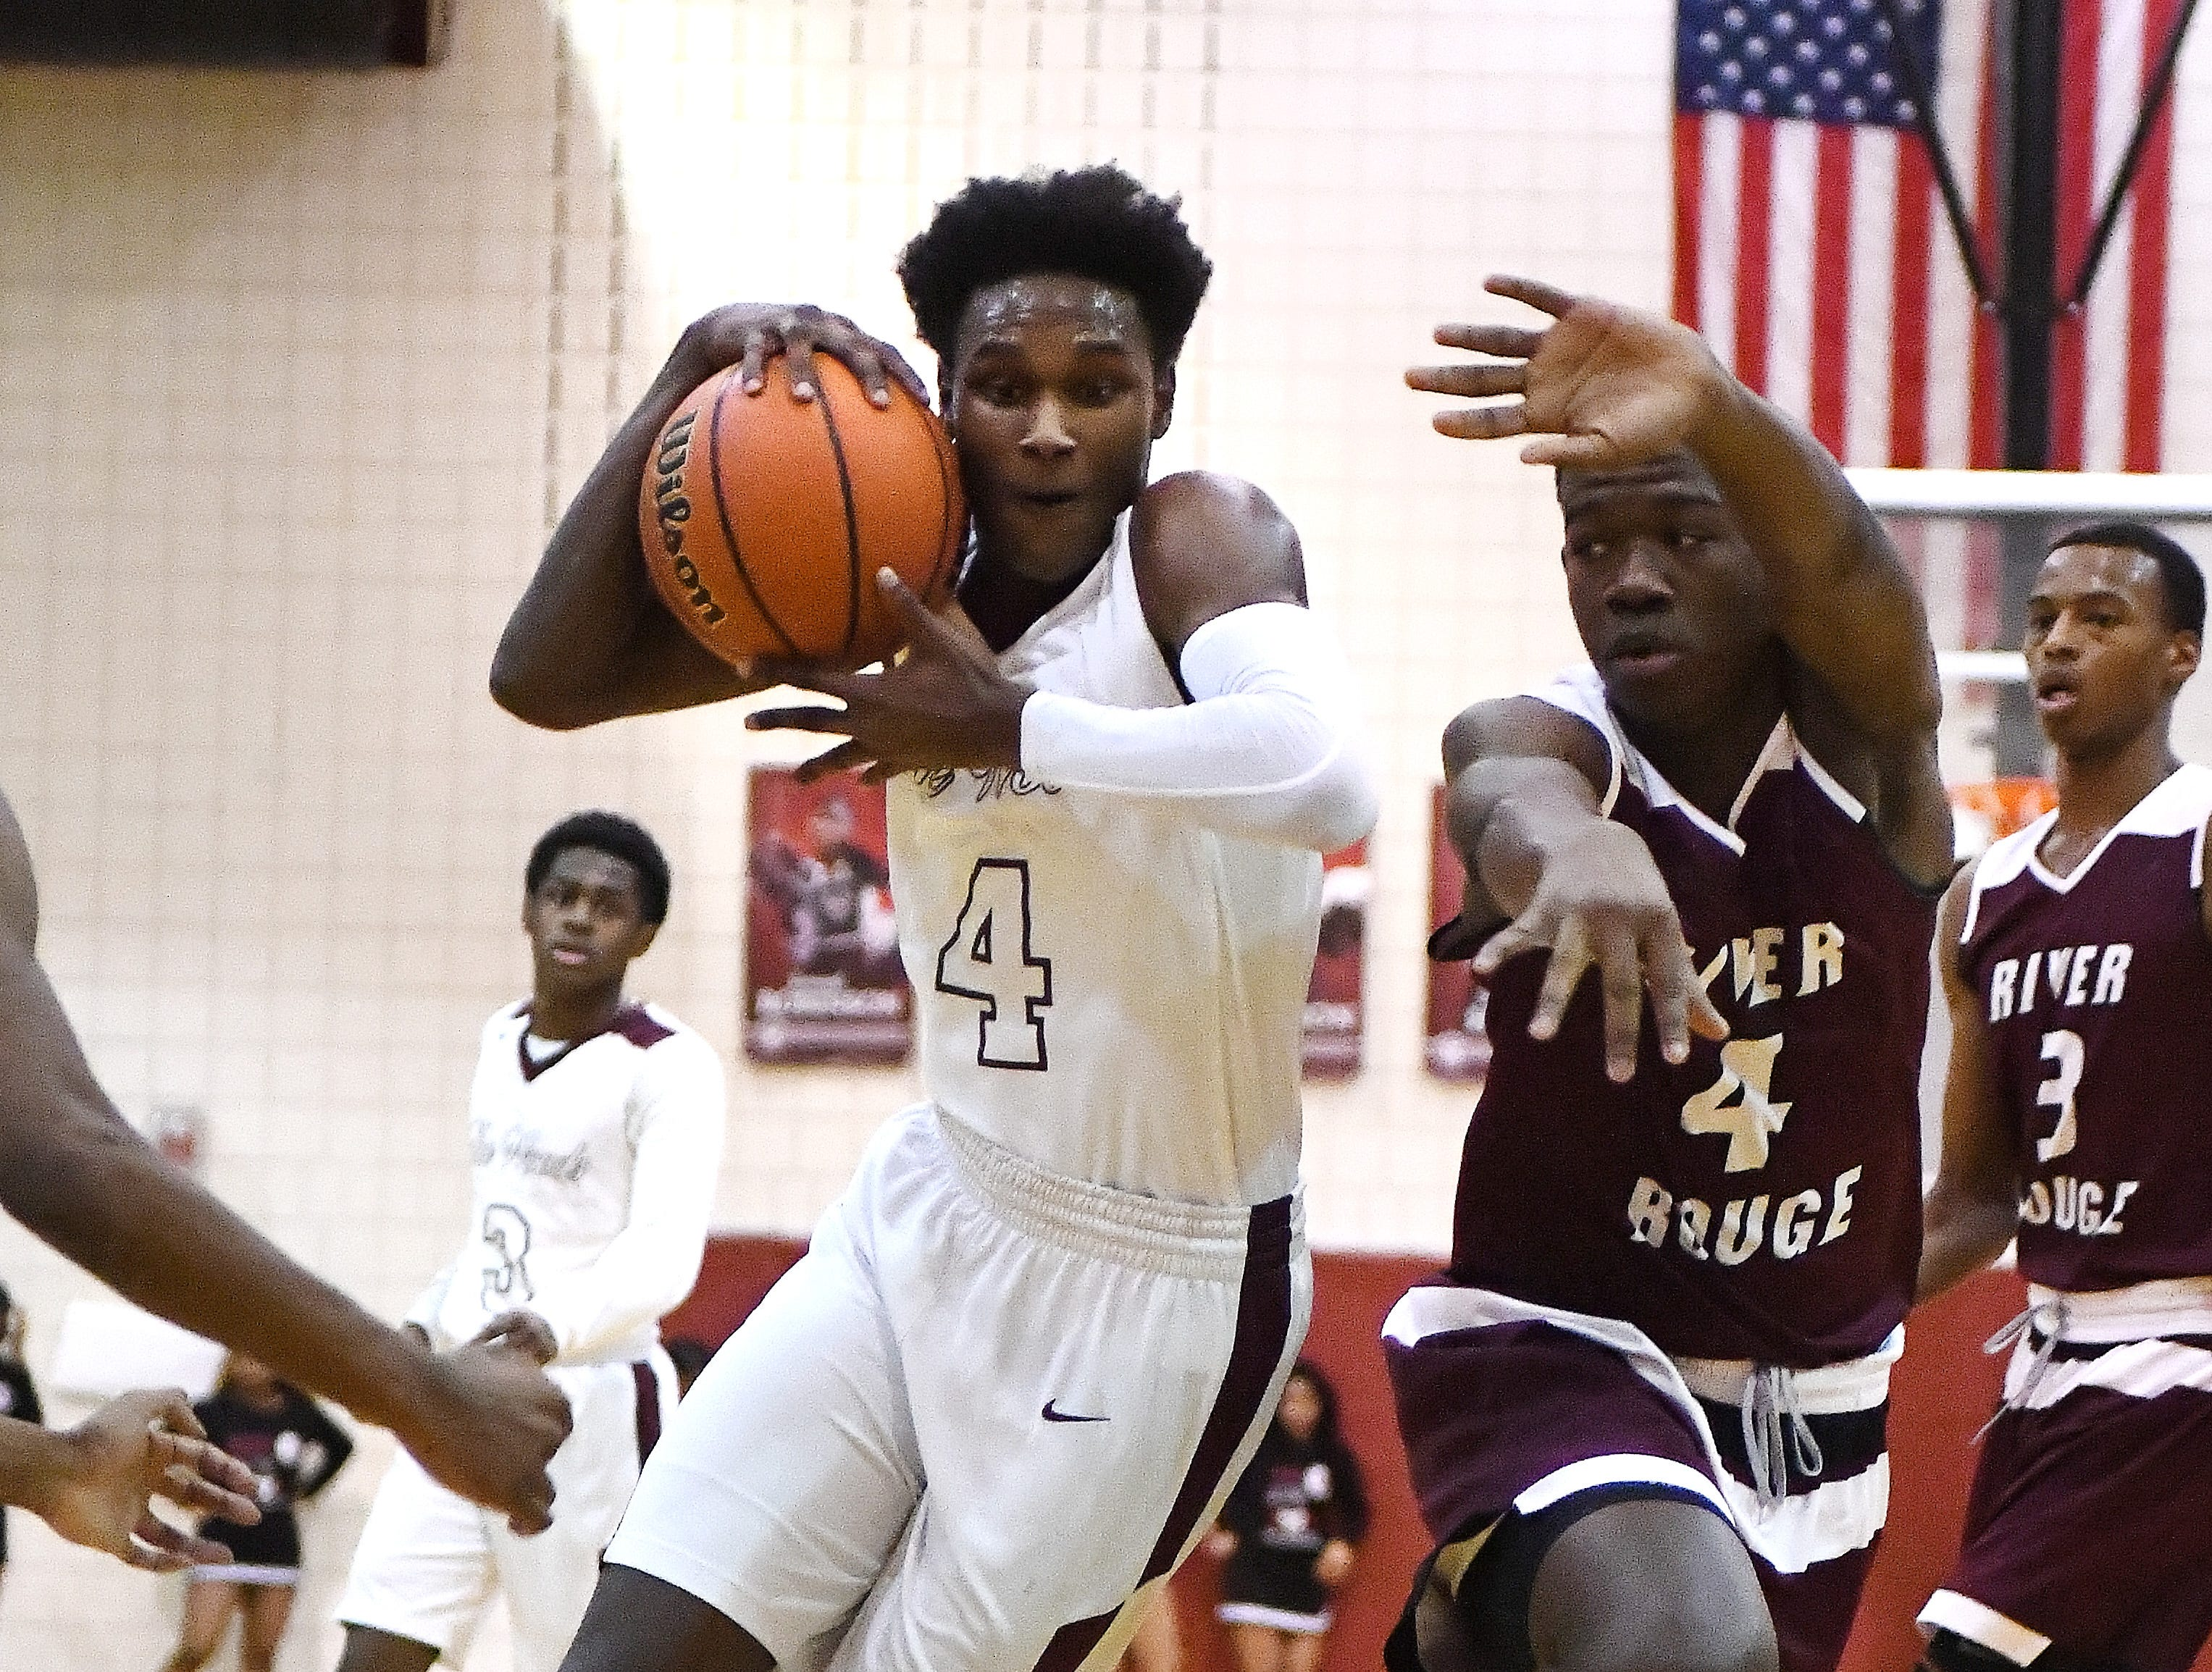 Harper Wood's Daniel Briggs drives on River Rouge's Legend Geeter in the first half. River Rouge High School at Harper Woods boys basketball in Harper Woods, Michigan on February 8, 2019.